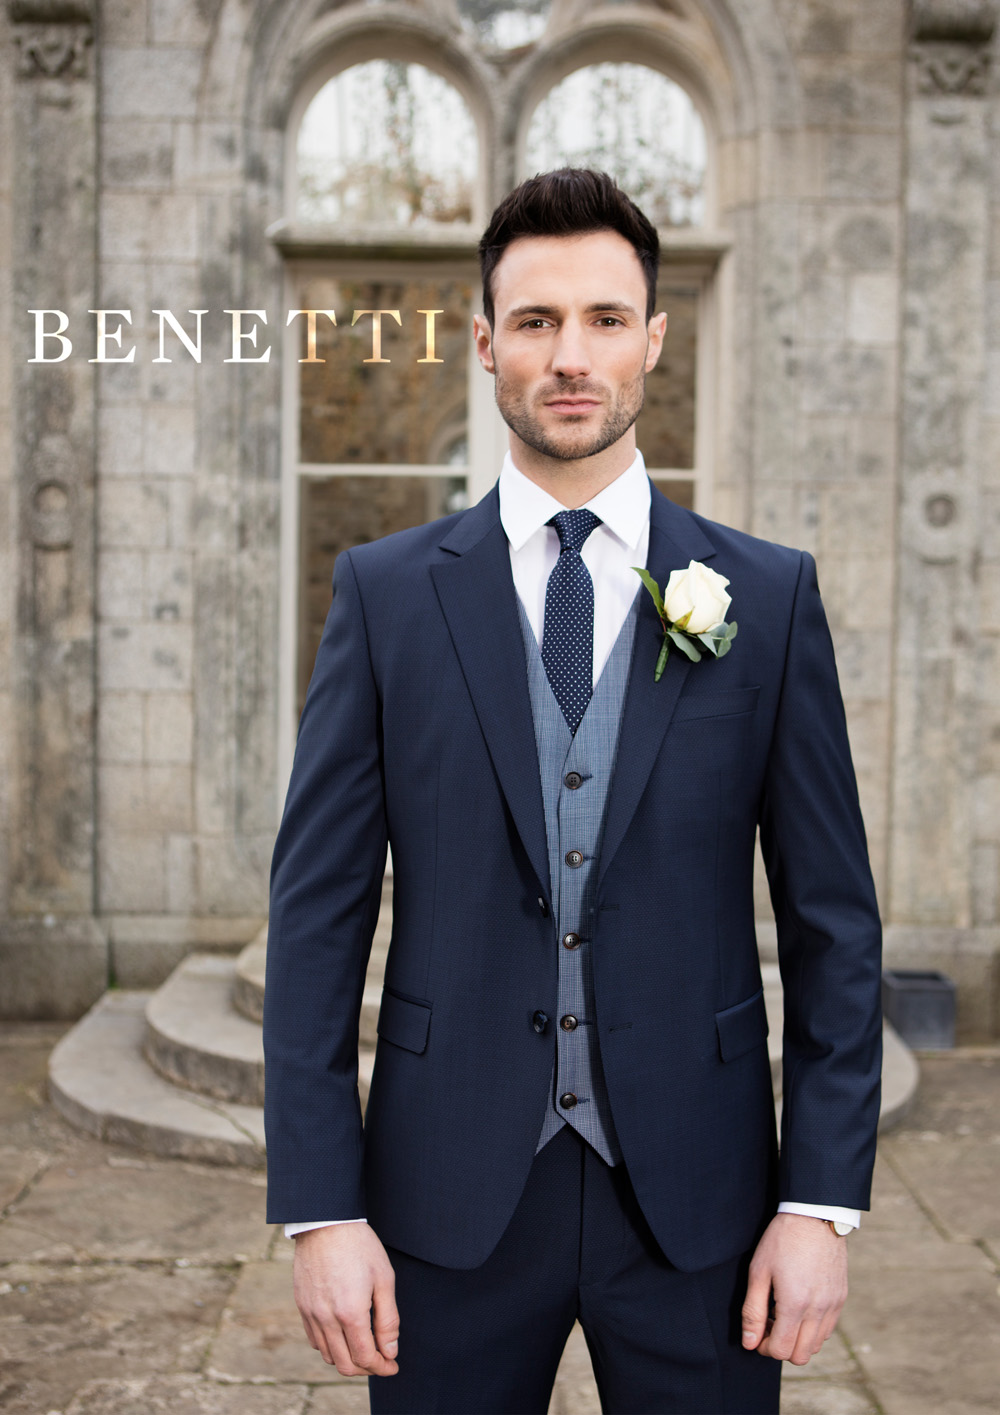 Benetti Micro Pattern 3 Piece Navy Suit - Tom Murphy\'s Formal and ...